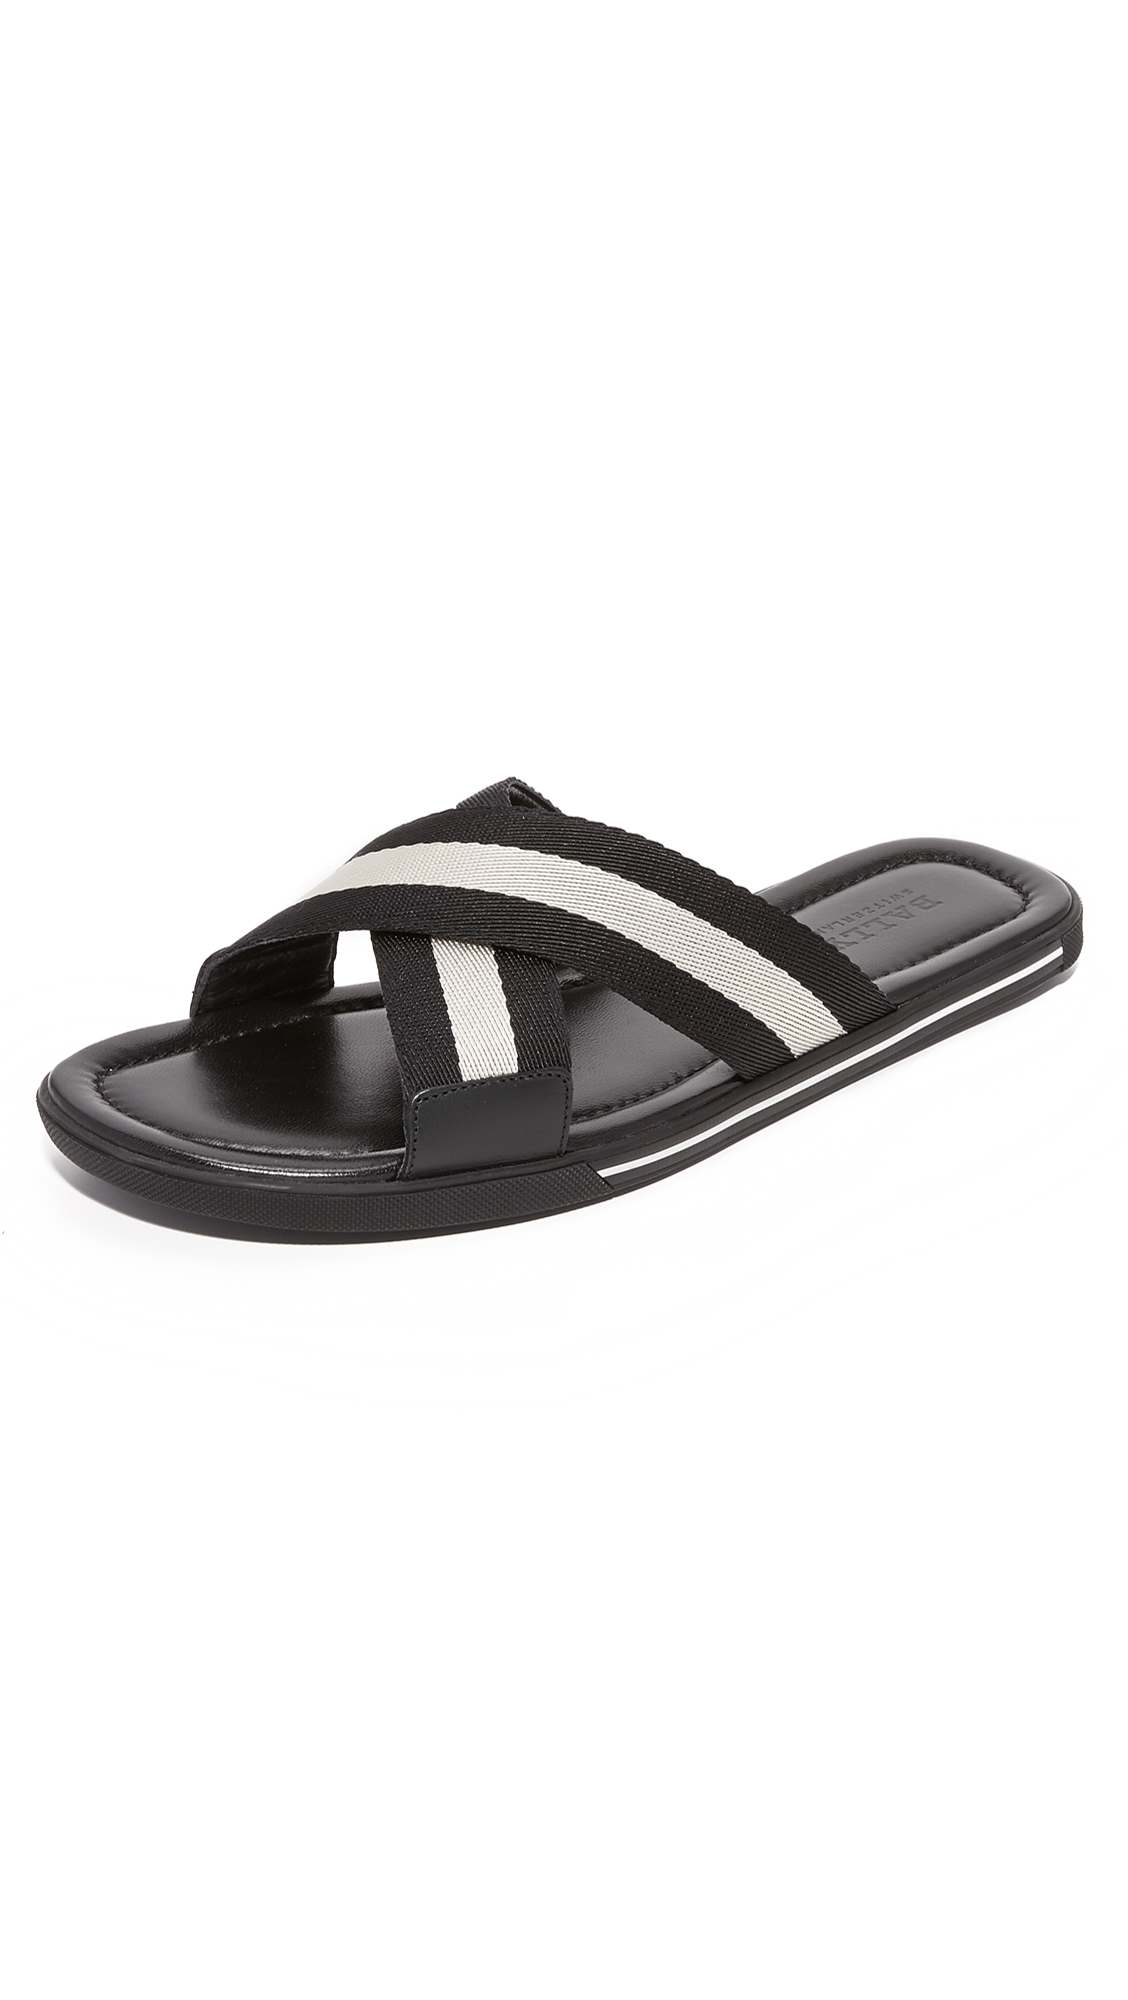 Bally Bonks Slide Sandals